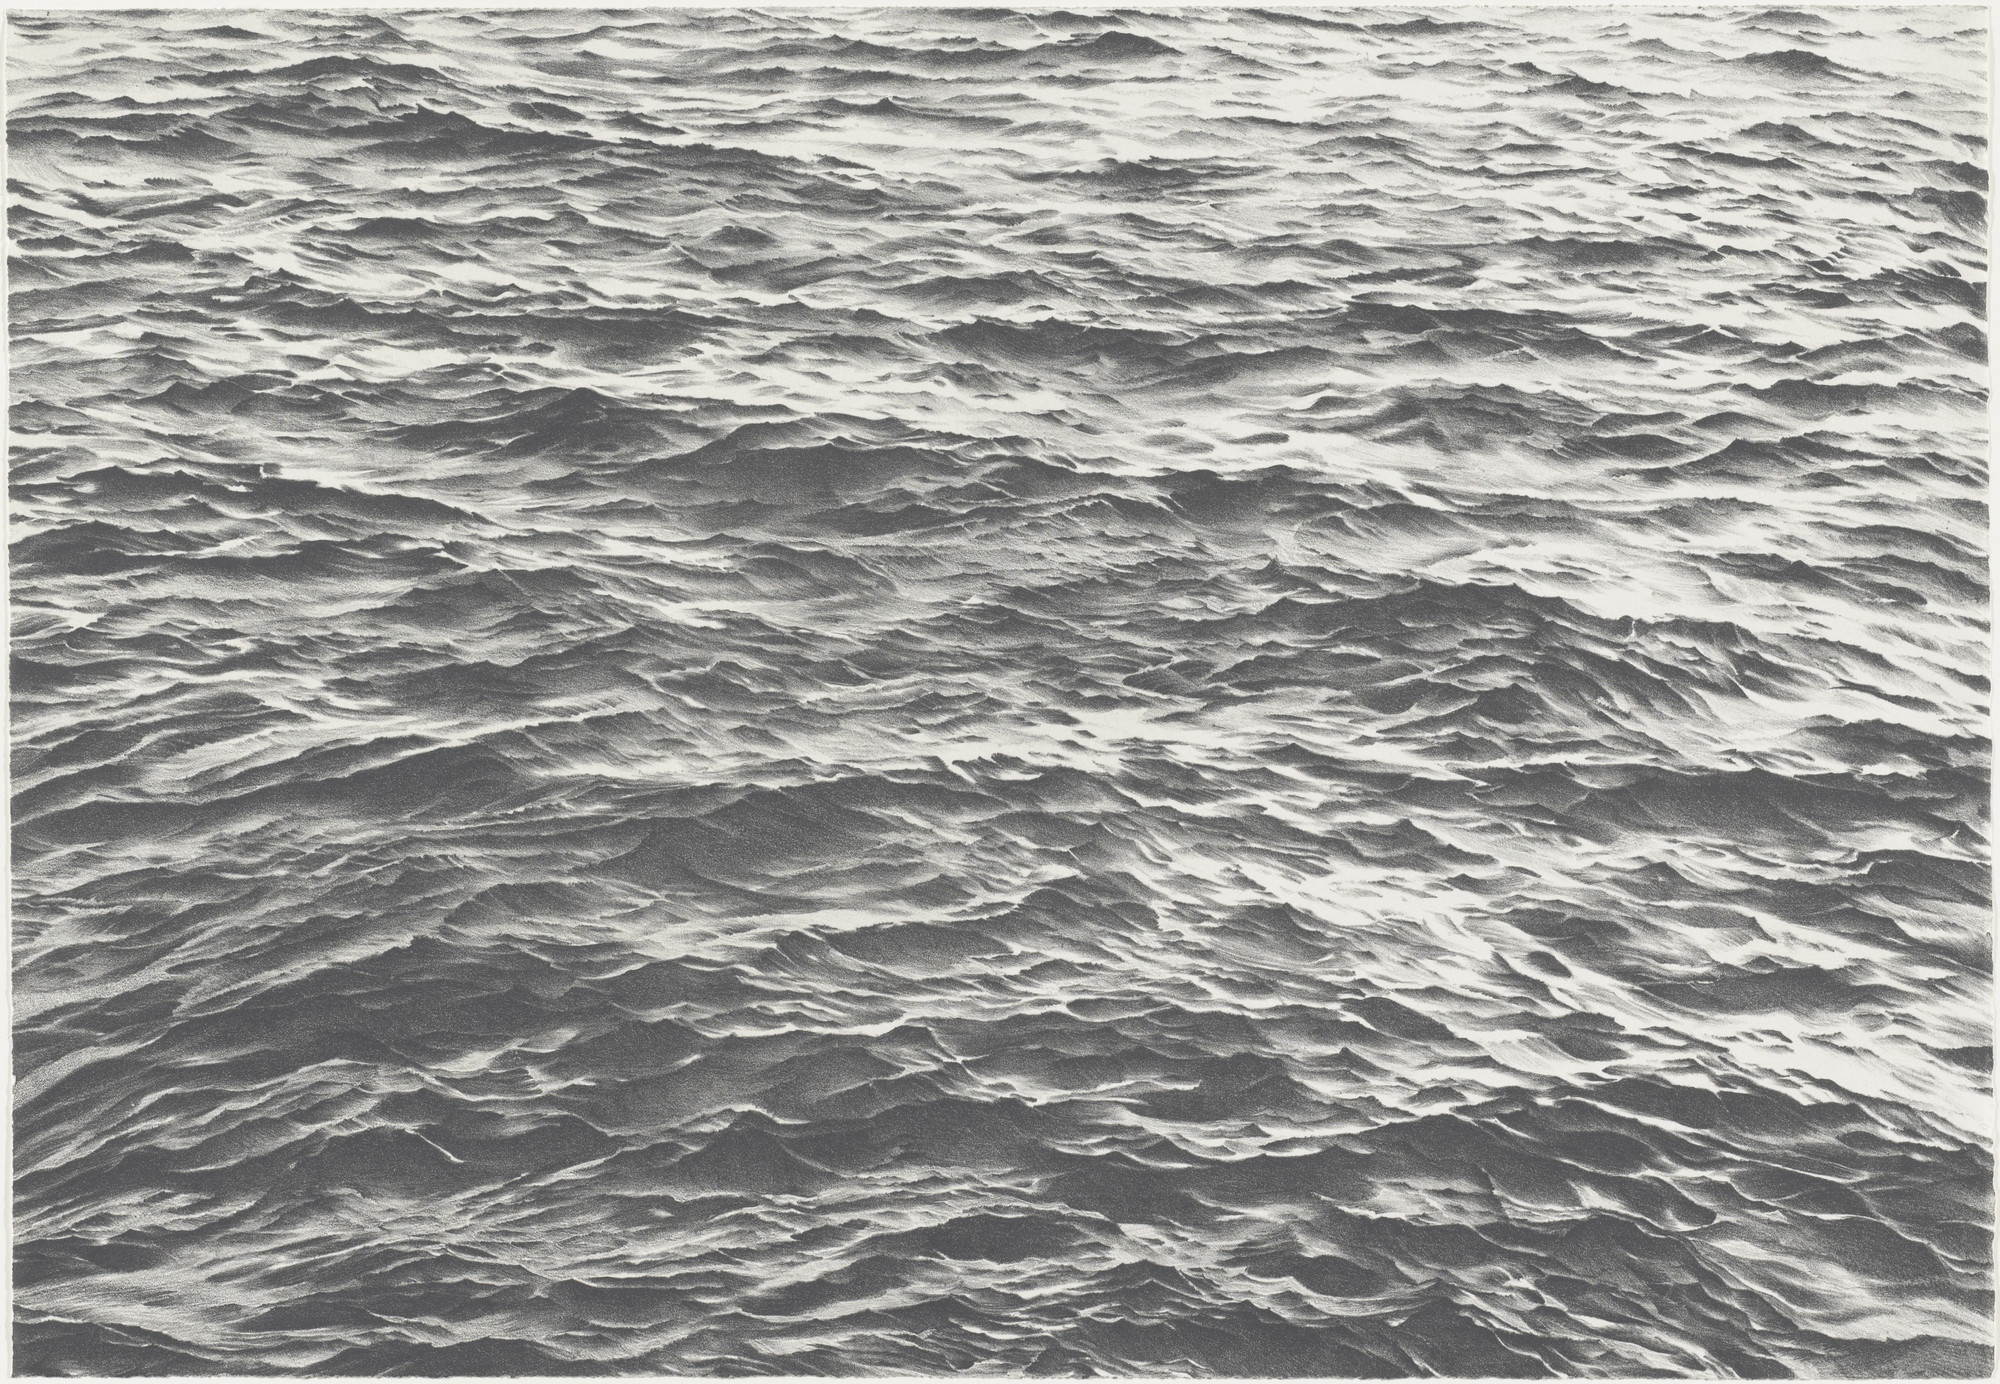 Vija Celmins. Untitled. 1970